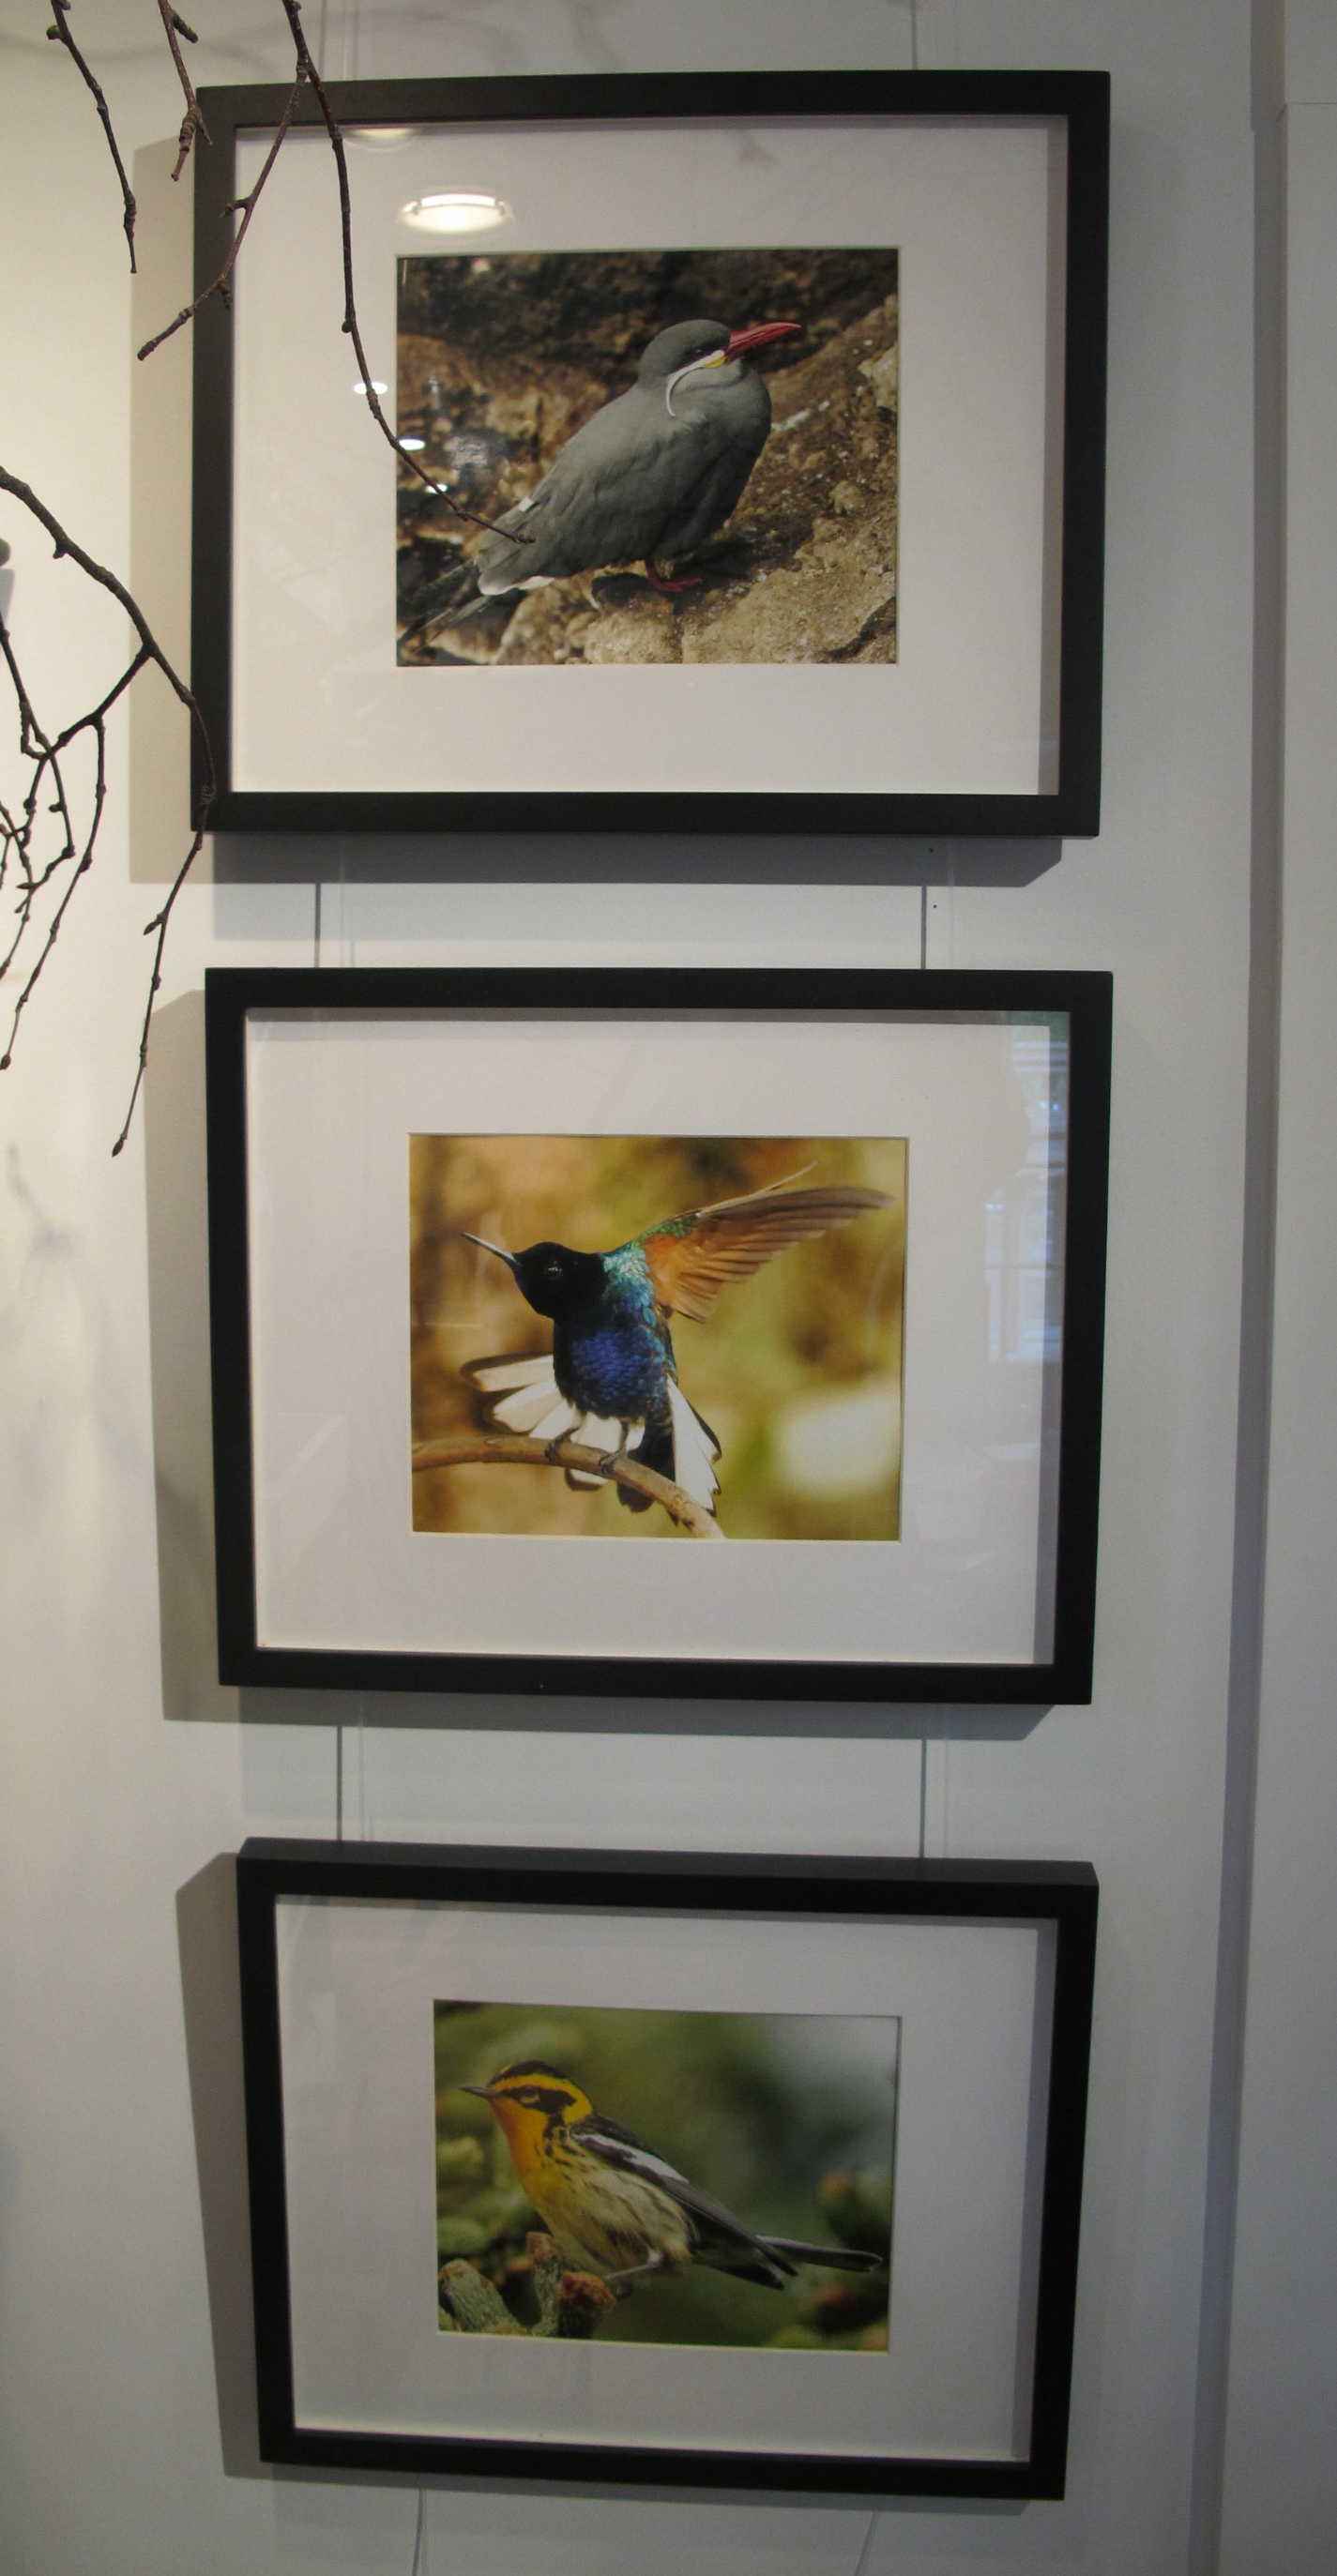 Three of Luke's bird photographs at the Notebook. From top to bottom, the birds are an Inca tern, a velvet-purple coronet and a Blackburnian warbler. They look even better when you see them in person.